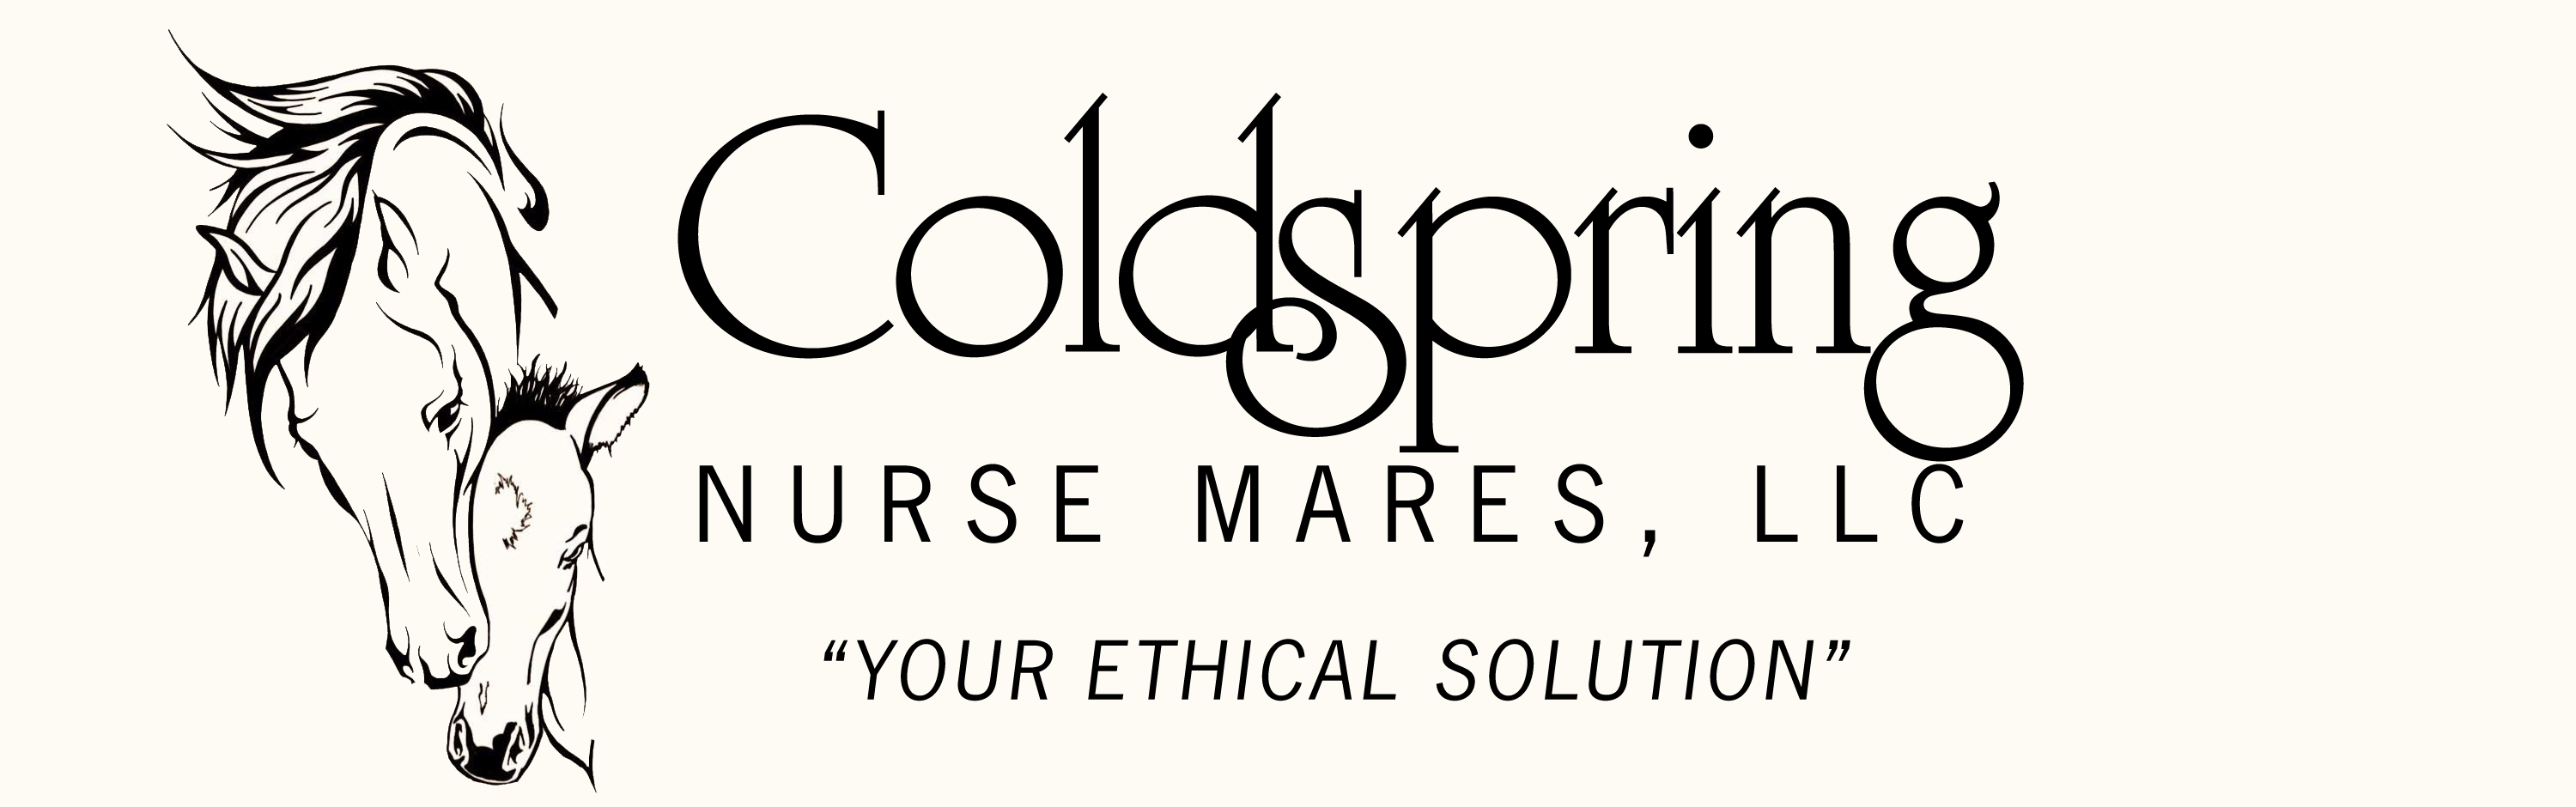 ColdSpring Nurse Mares, LLC